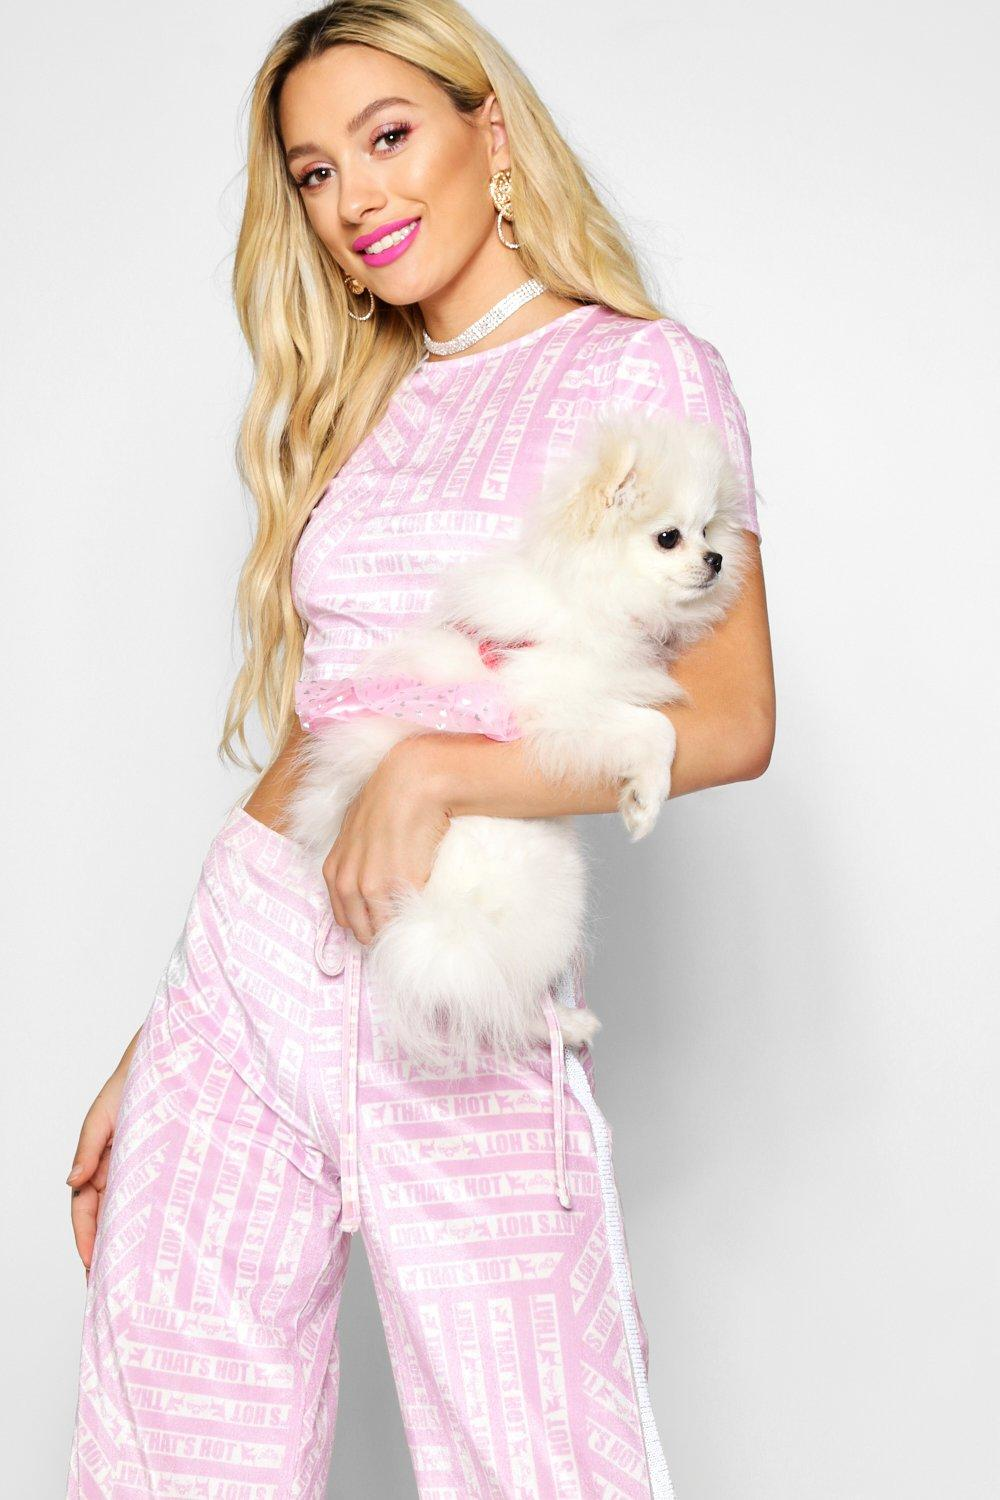 Boohoo-Paris-Hilton-Printed-Velour-Top